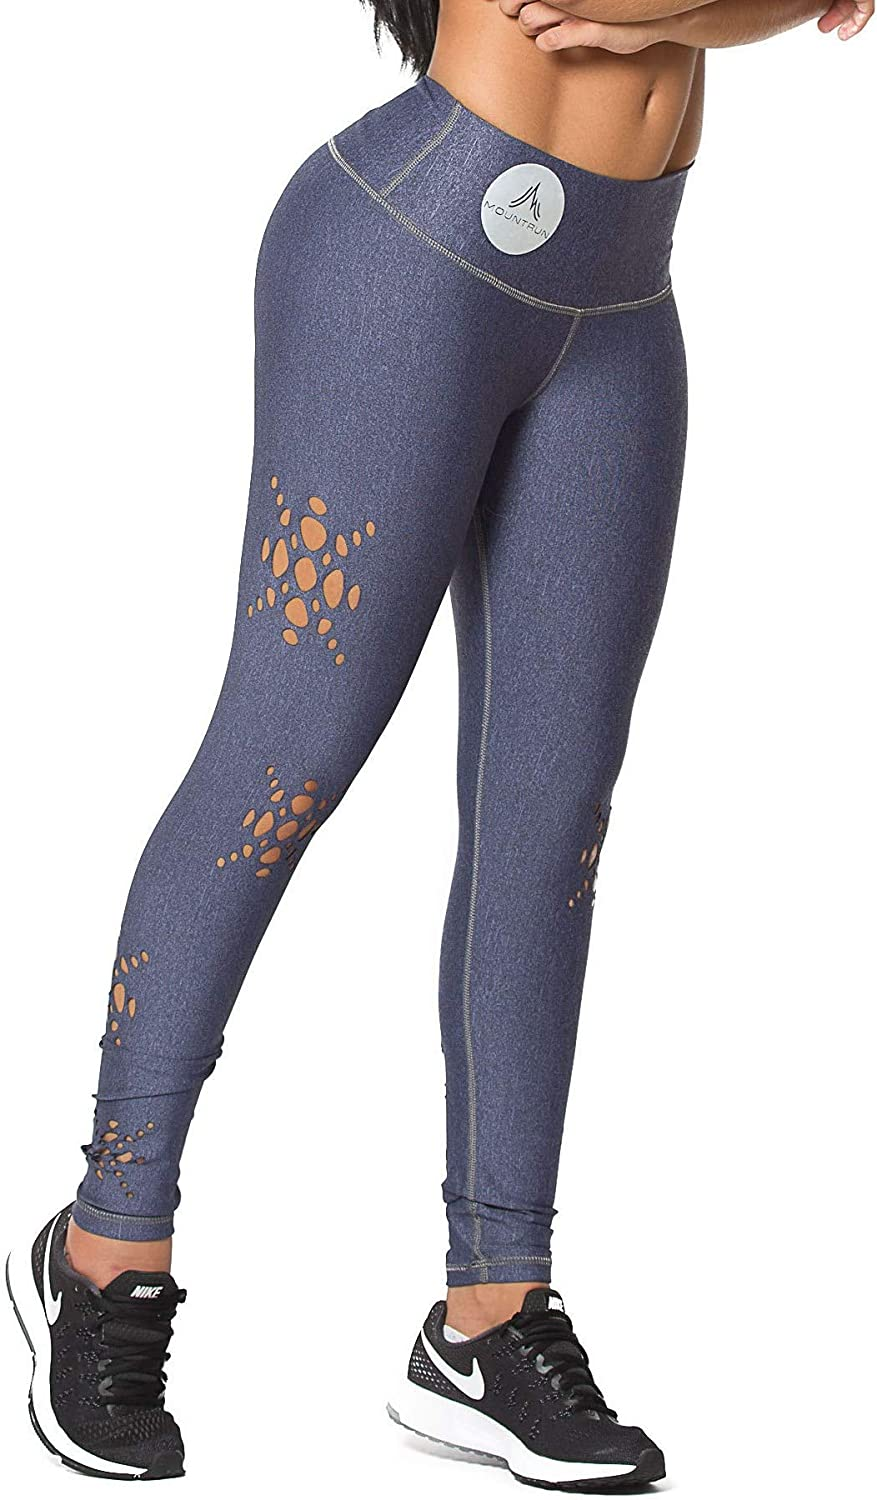 Active Colombian Women High Waisted High Compression Workout Shaping Leggings (Starcut)